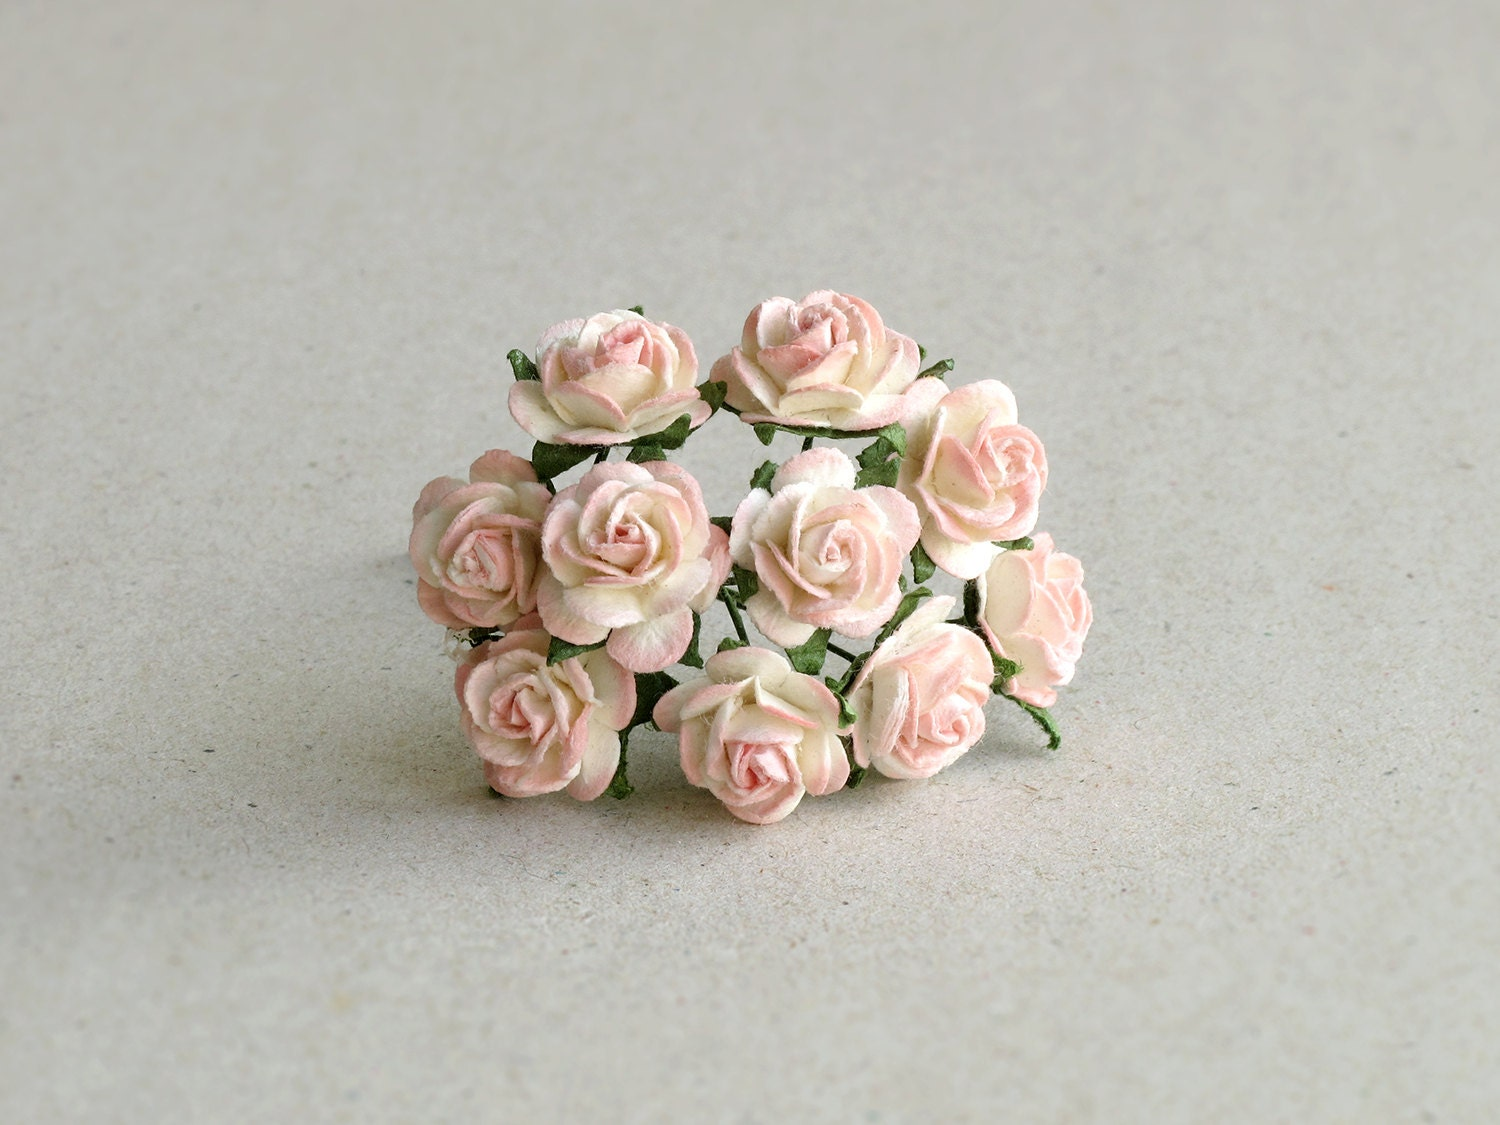 15mm Mini Peach Paper Flowers 10 Mulberry Paper Roses With